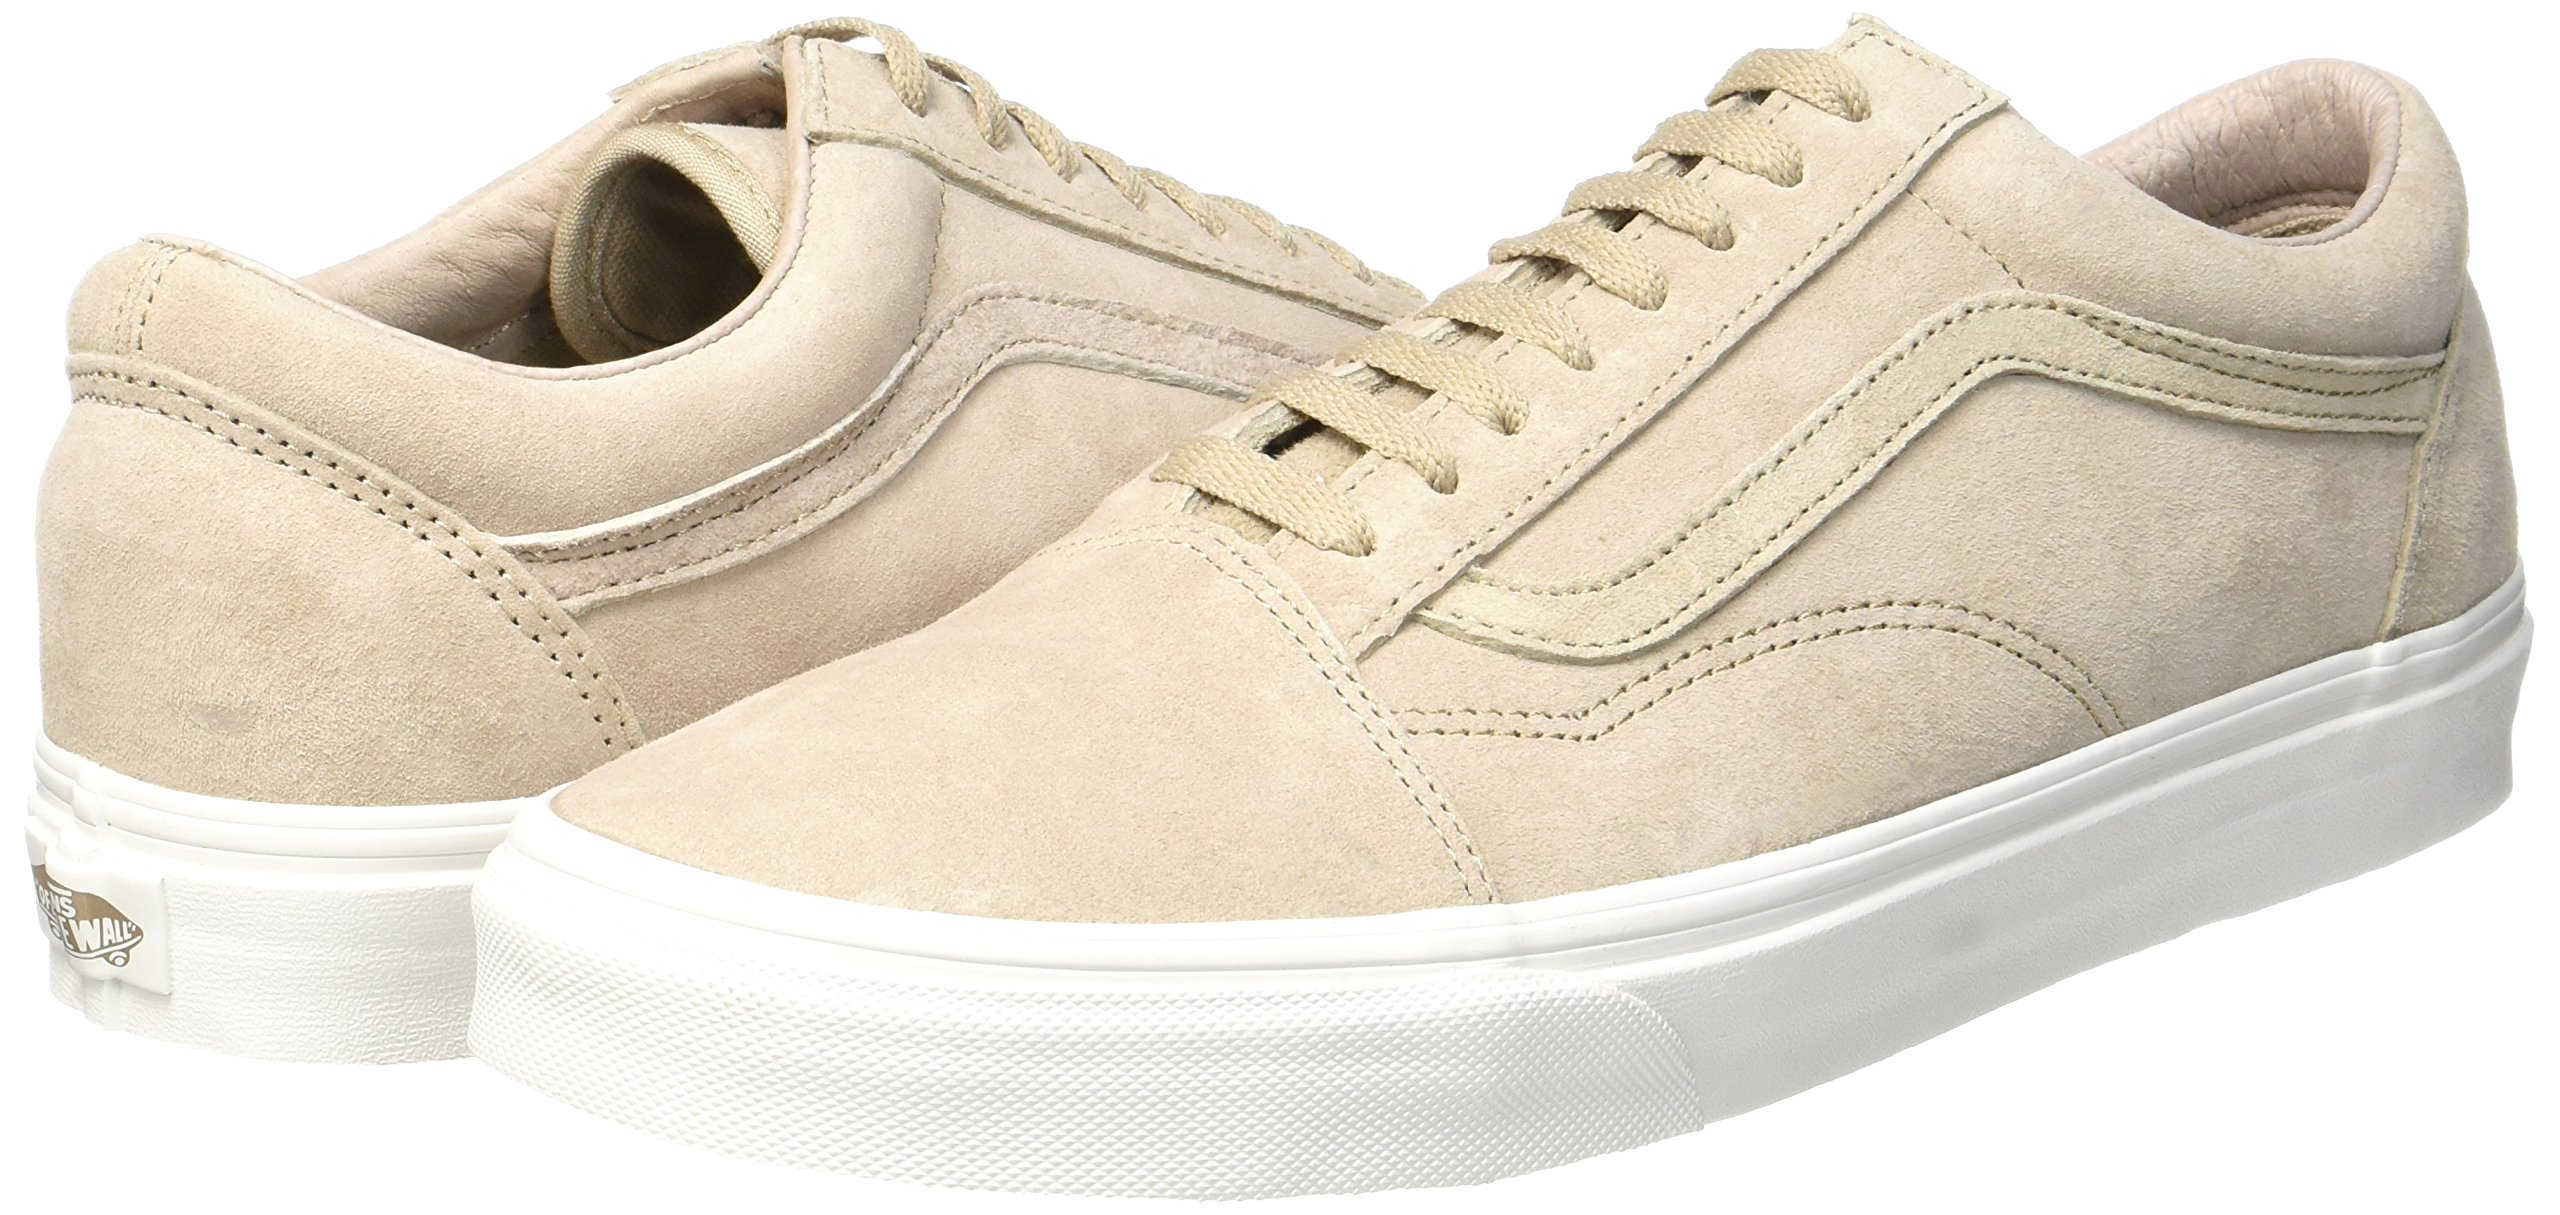 SkoolChaussures Running Vans Adulte Mixte Old de D9HbeWE2IY